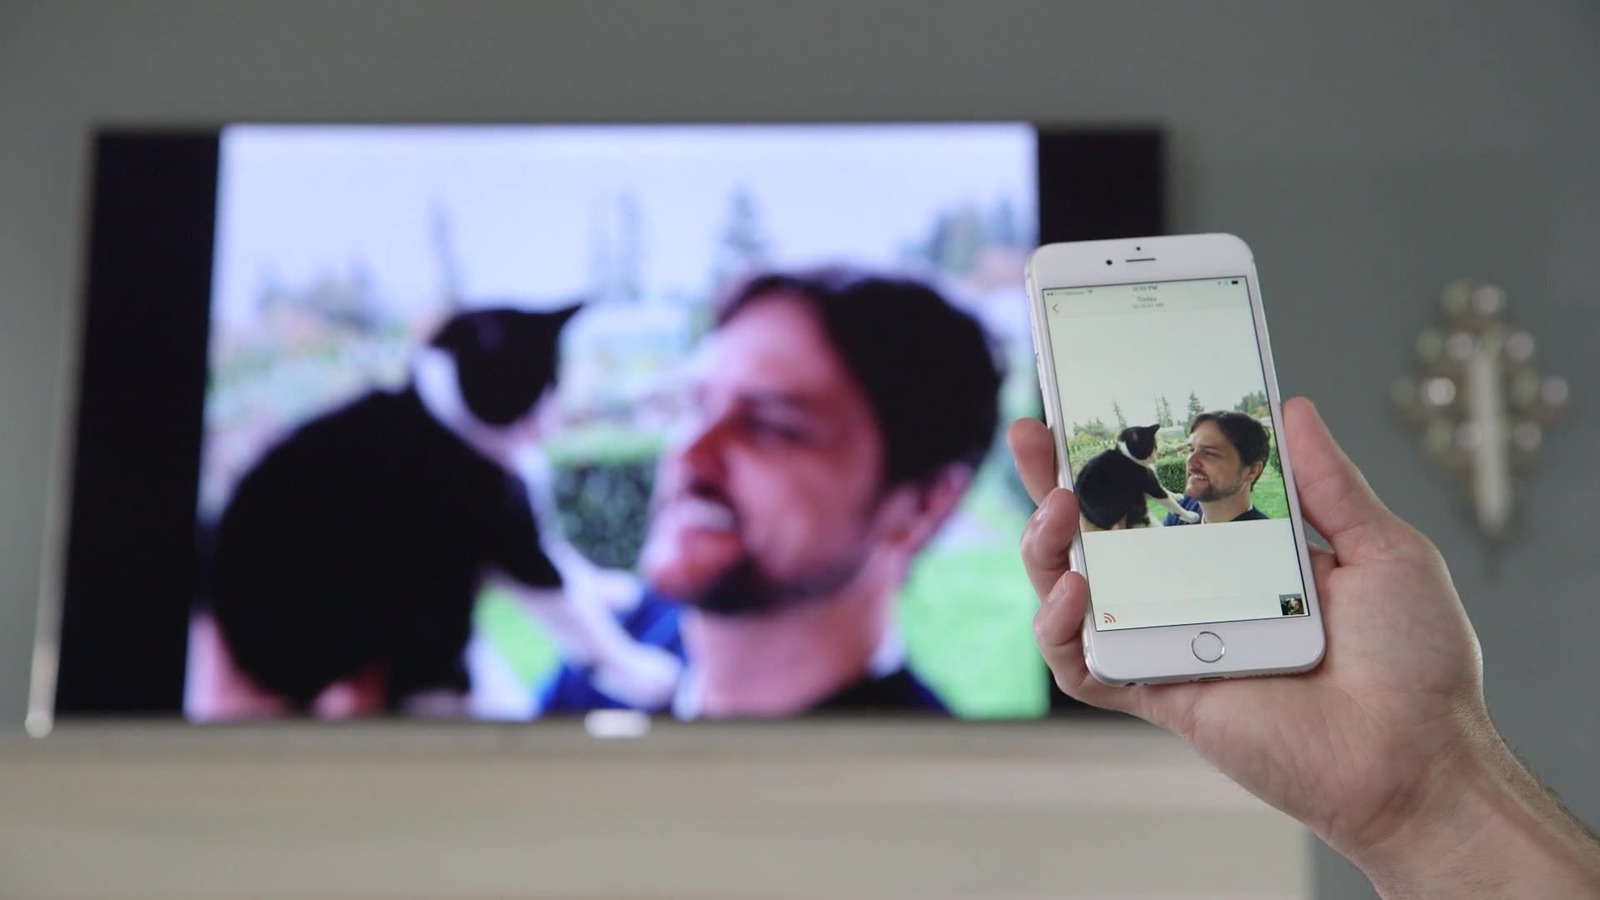 AllCast lets you cast content from your iOS device to Apple TV, Chromecast and more